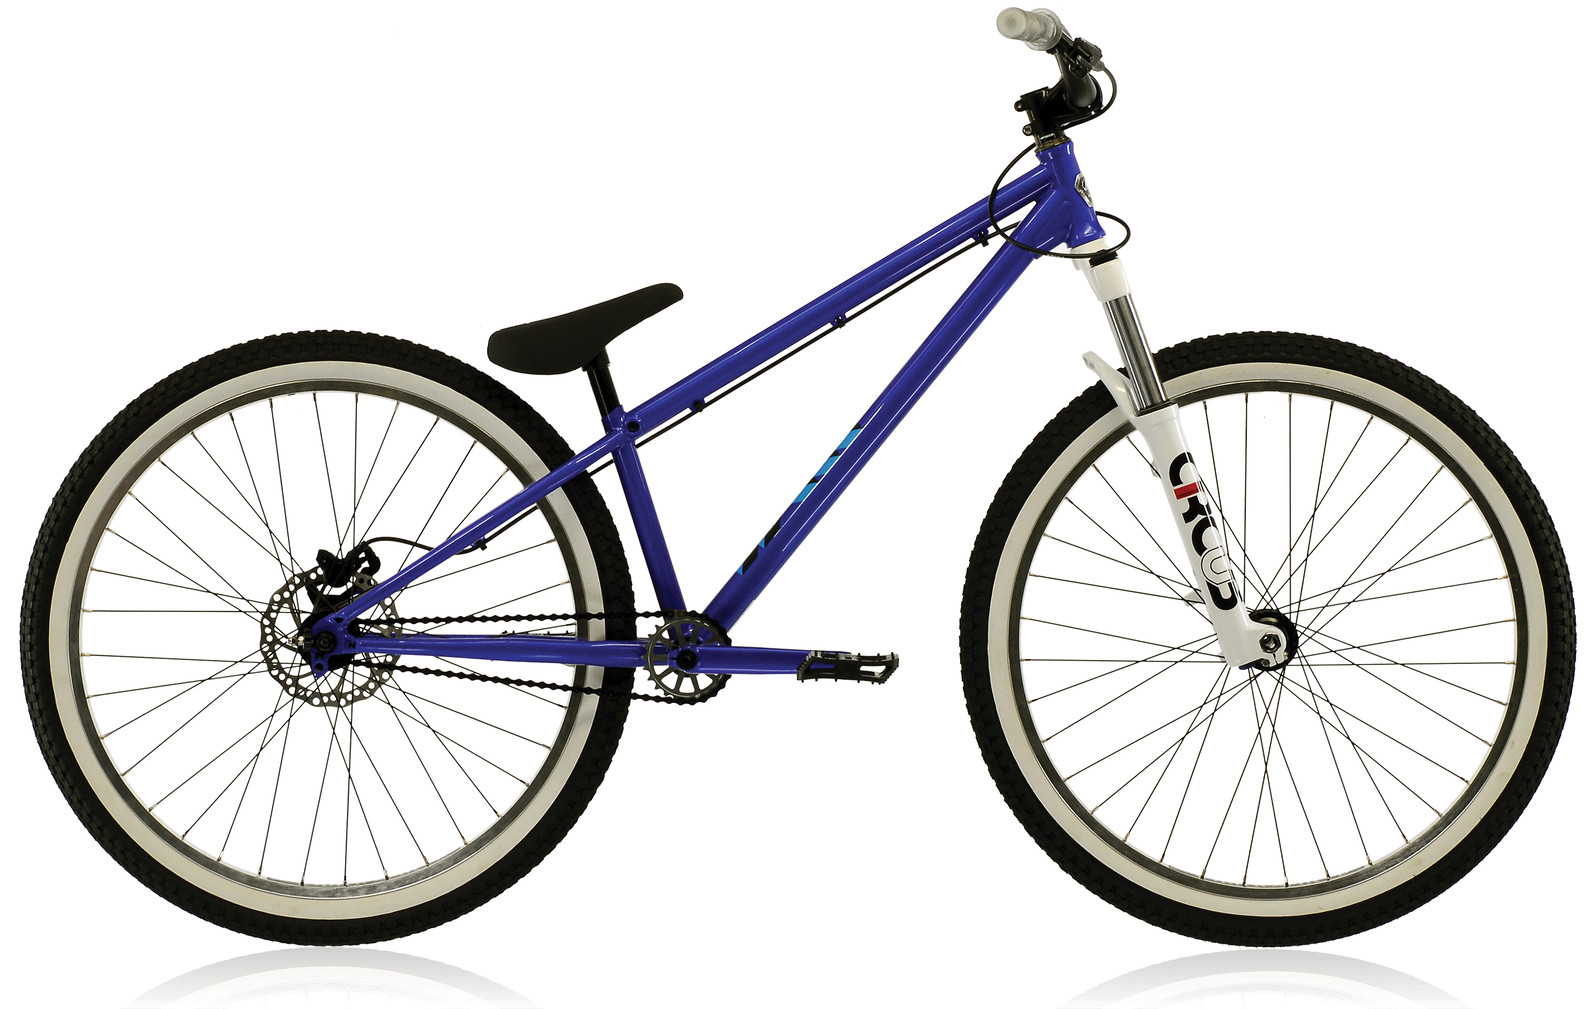 2013 Norco One25 Bike one25-1